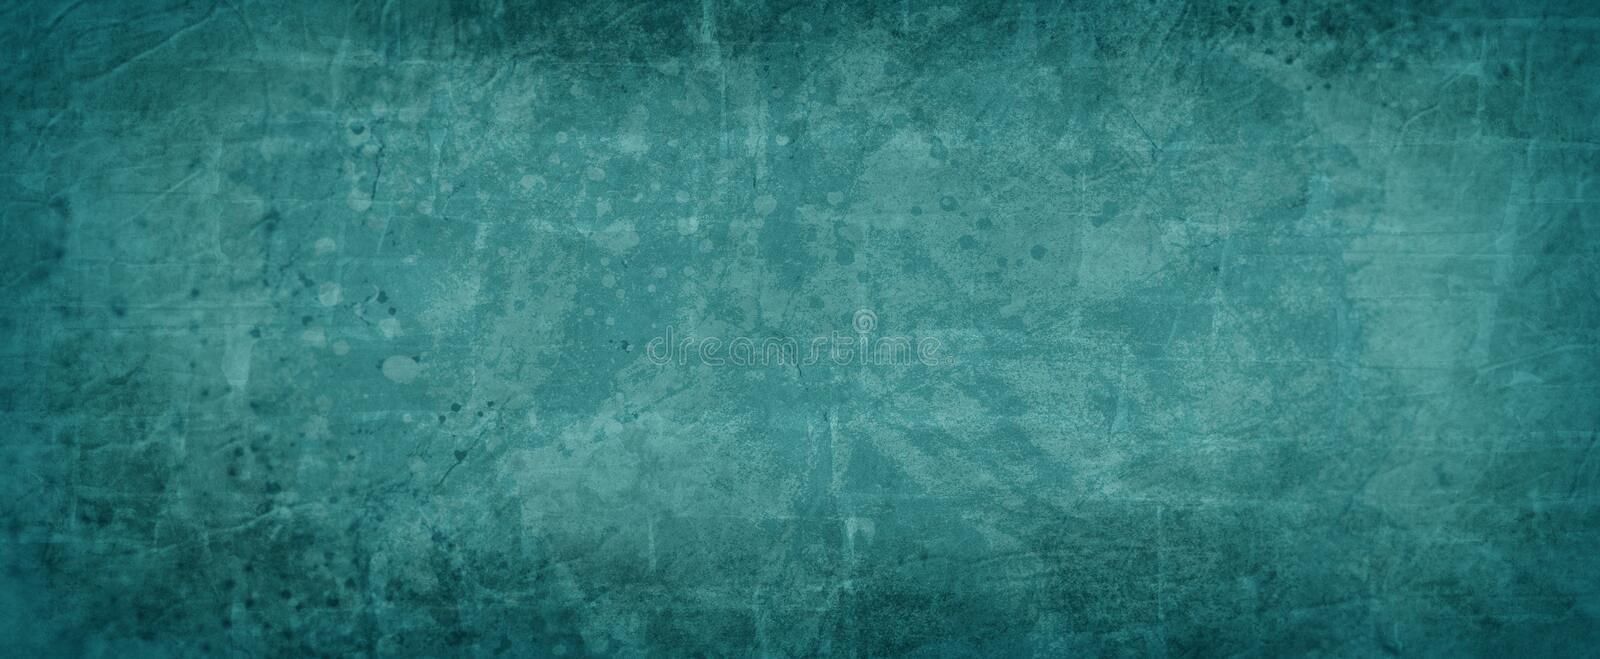 Blue green background texture, dark teal color with abstract vintage paint spatter texture with rock wall overlay design, elegant. Paper illustration vector illustration